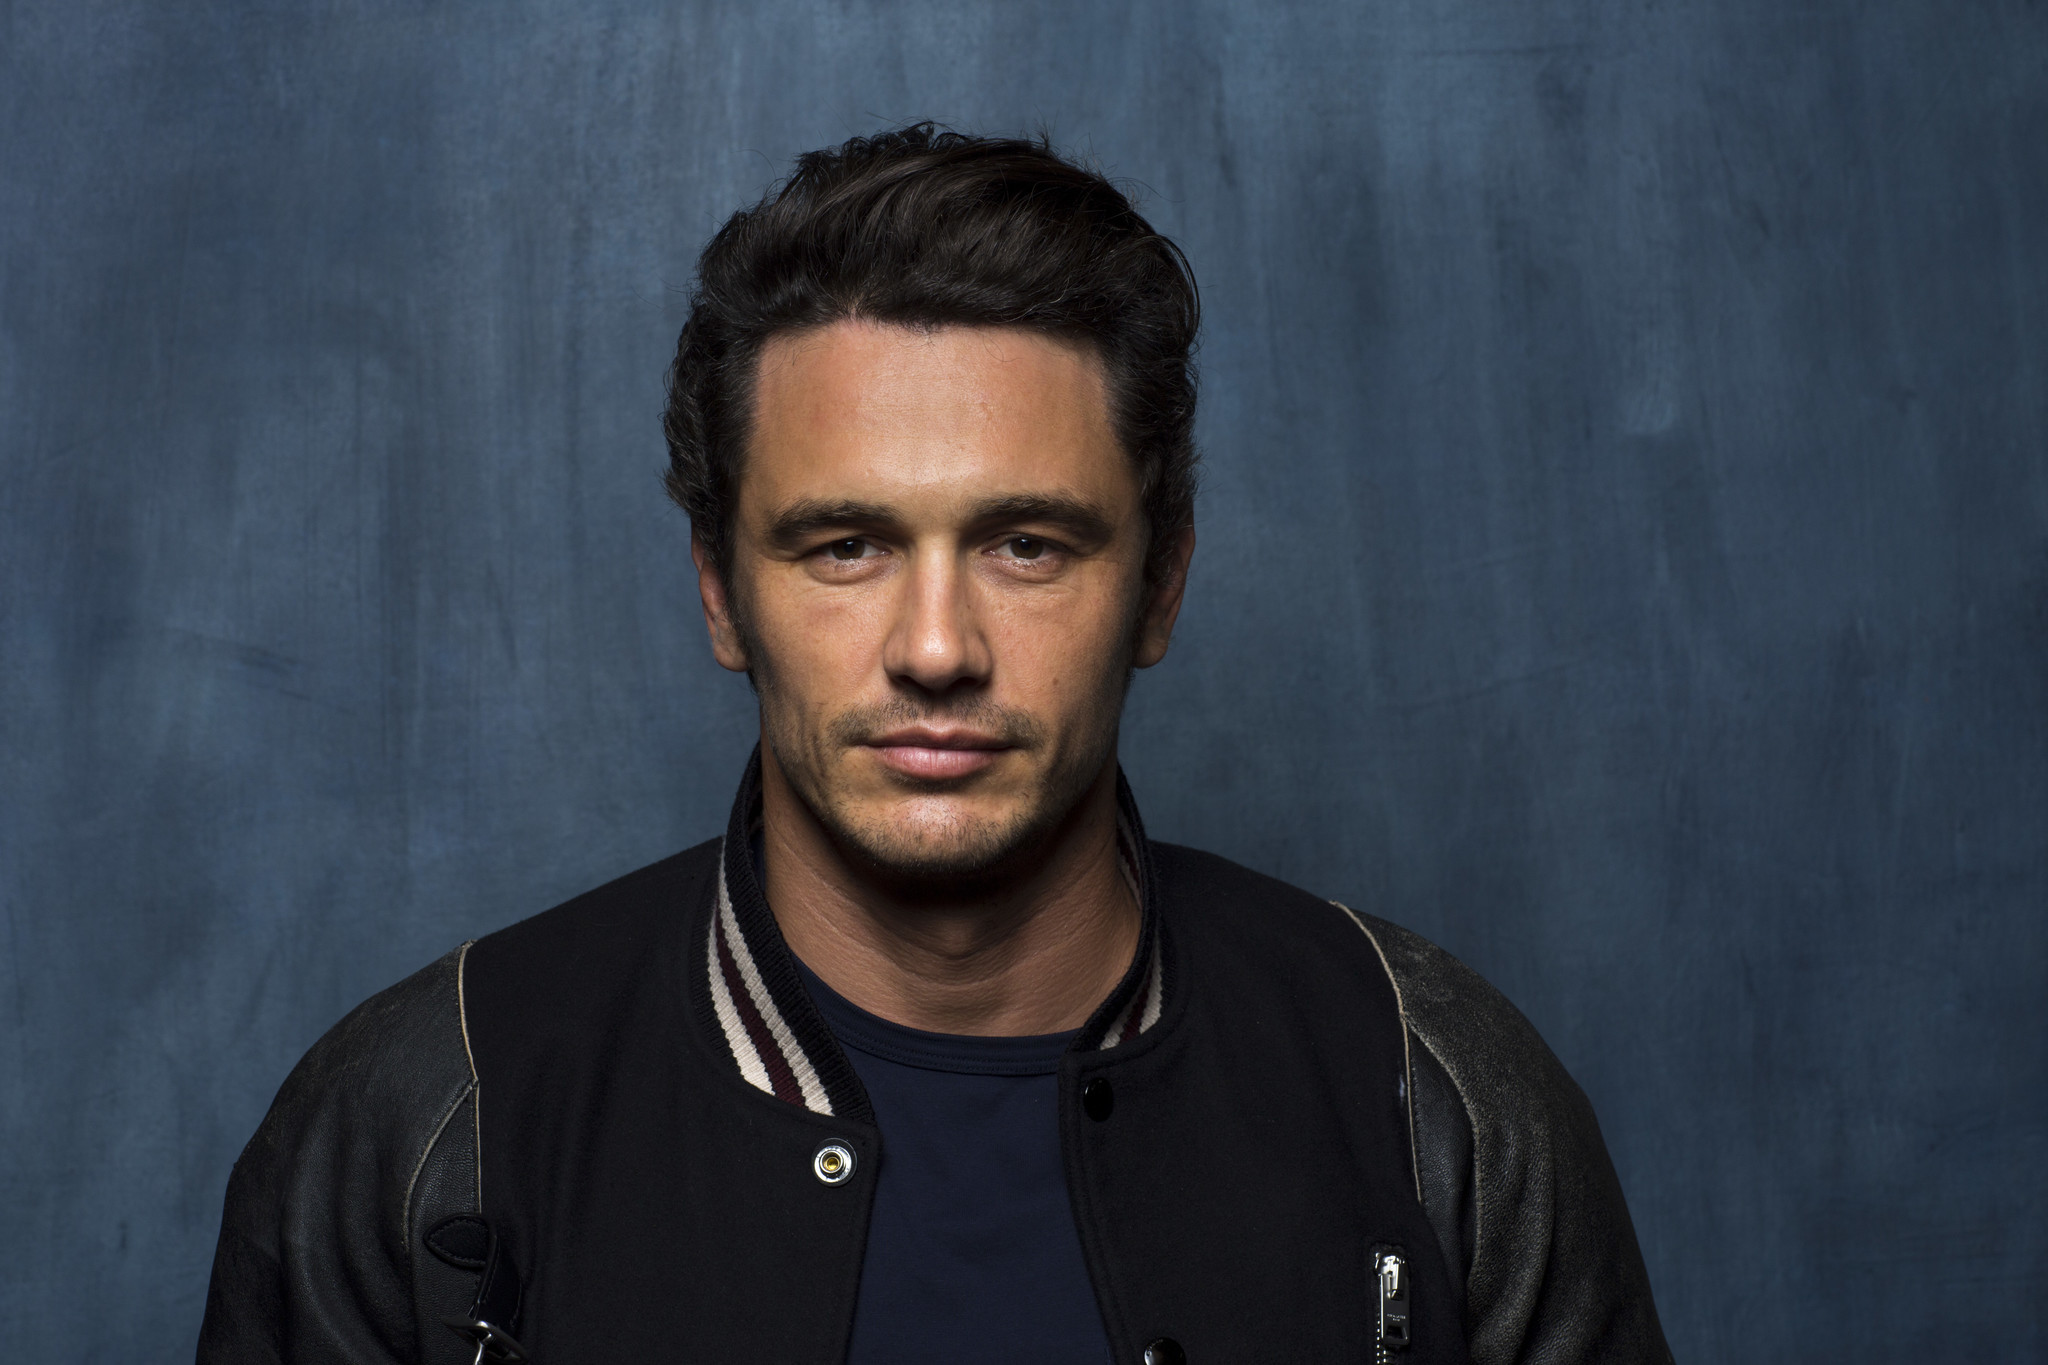 five women accuse actor james franco of inappropriate or sexually